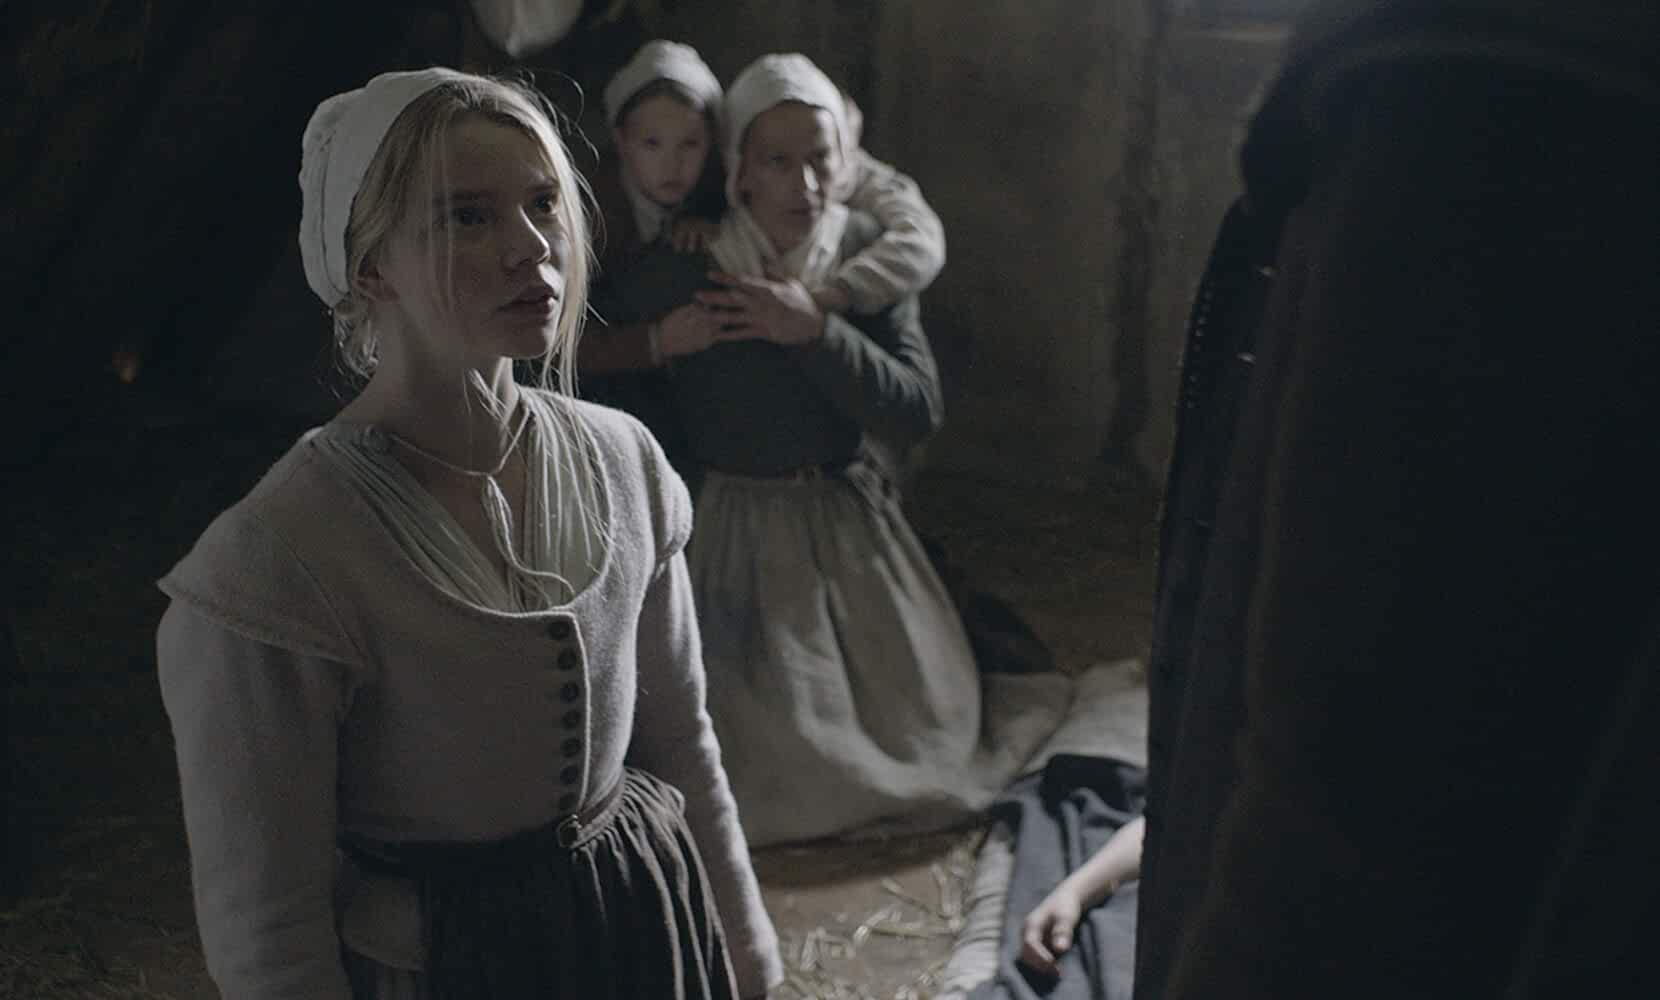 Kate Dickie, Ellie Grainger, and Anya Taylor-Joy in The VVitch: A New-England Folktale (2015)